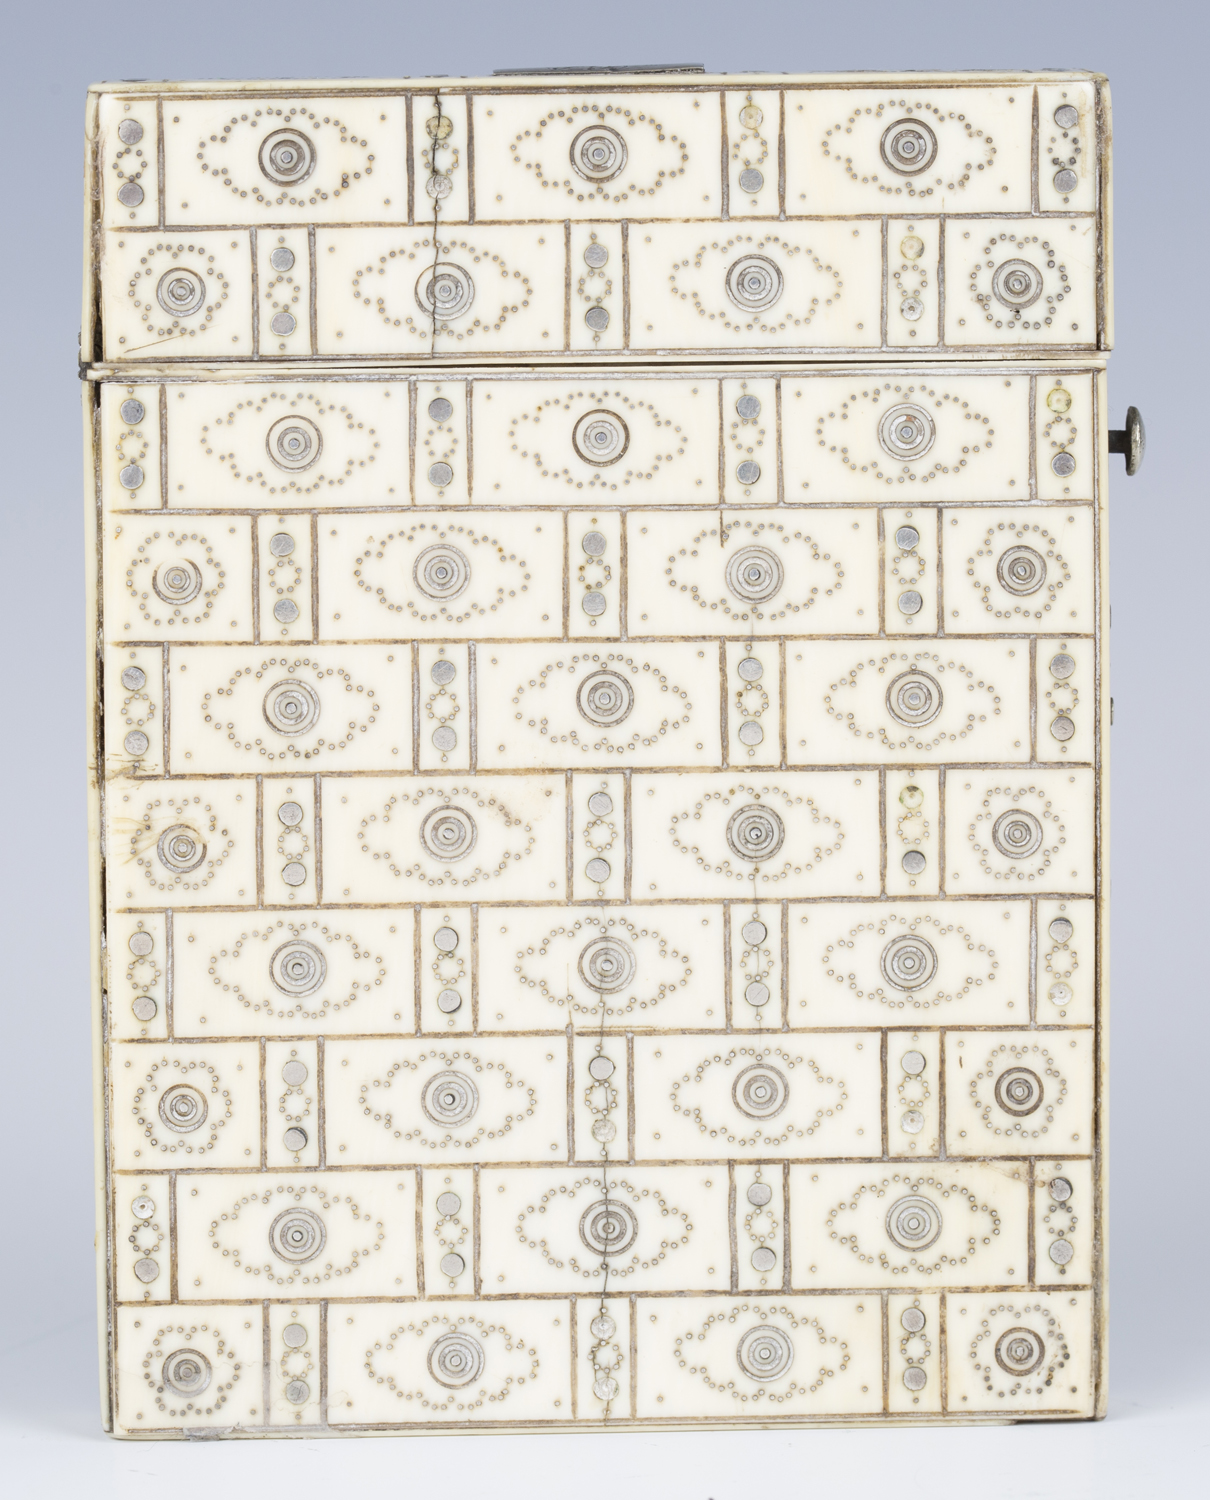 A 19th century ivory and piqué inlaid visiting card case, engraved with an overall brickwork effect,